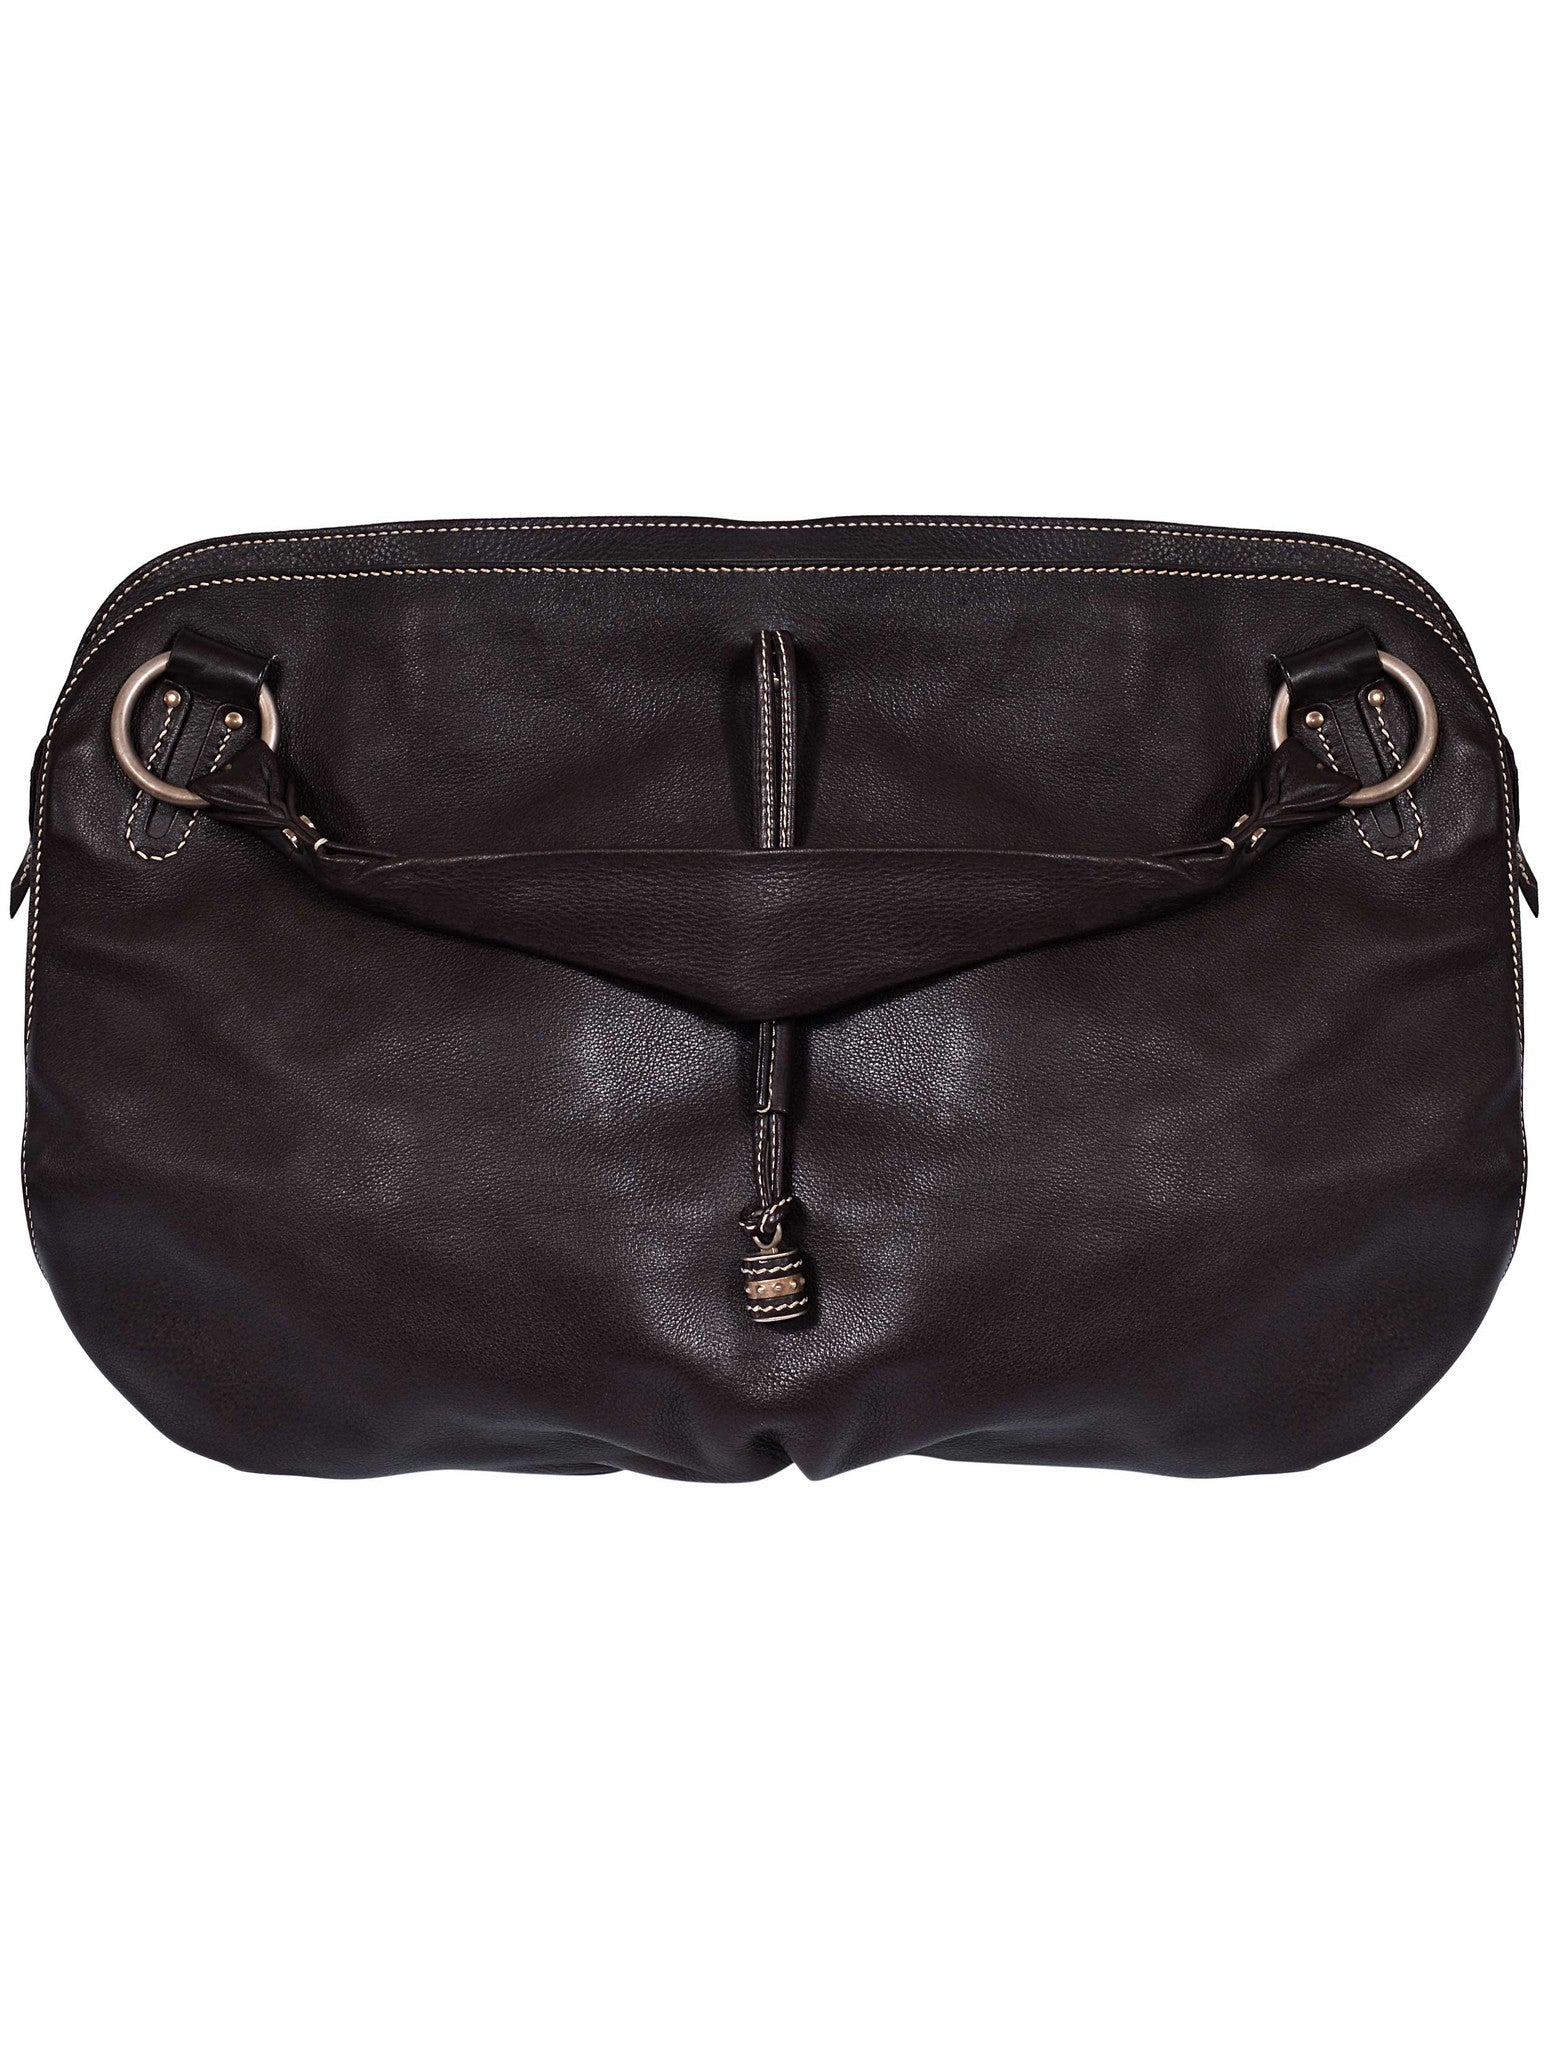 LARGE LEATHER HOBO